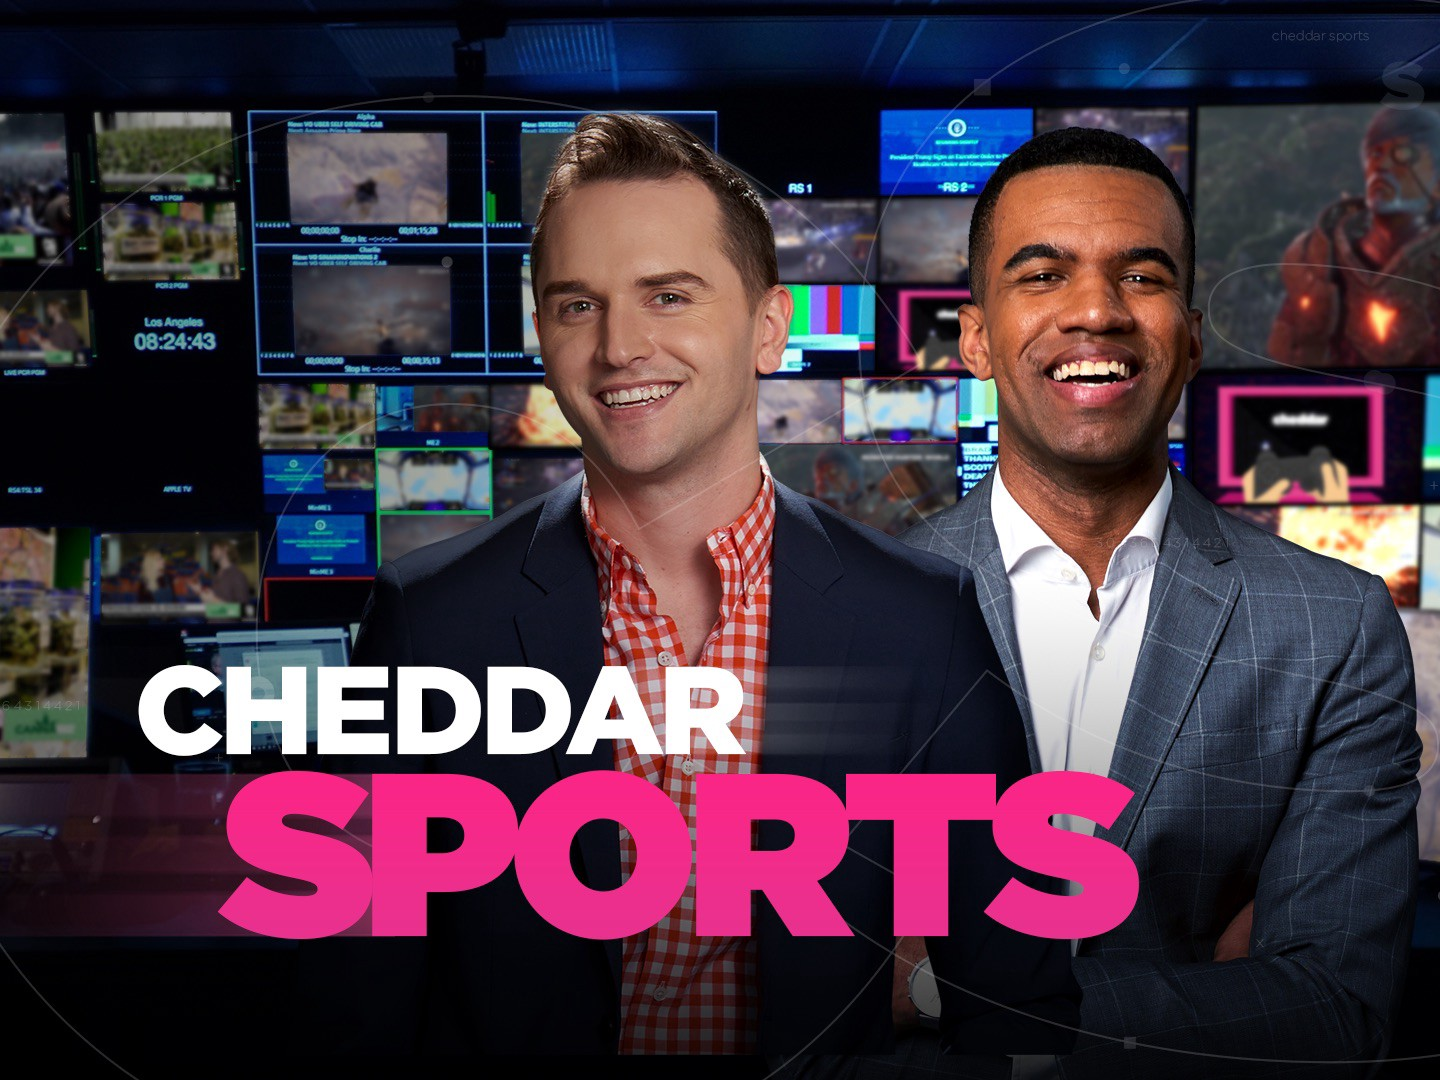 Cheddar Brings esports News Show to Twitch and Announces